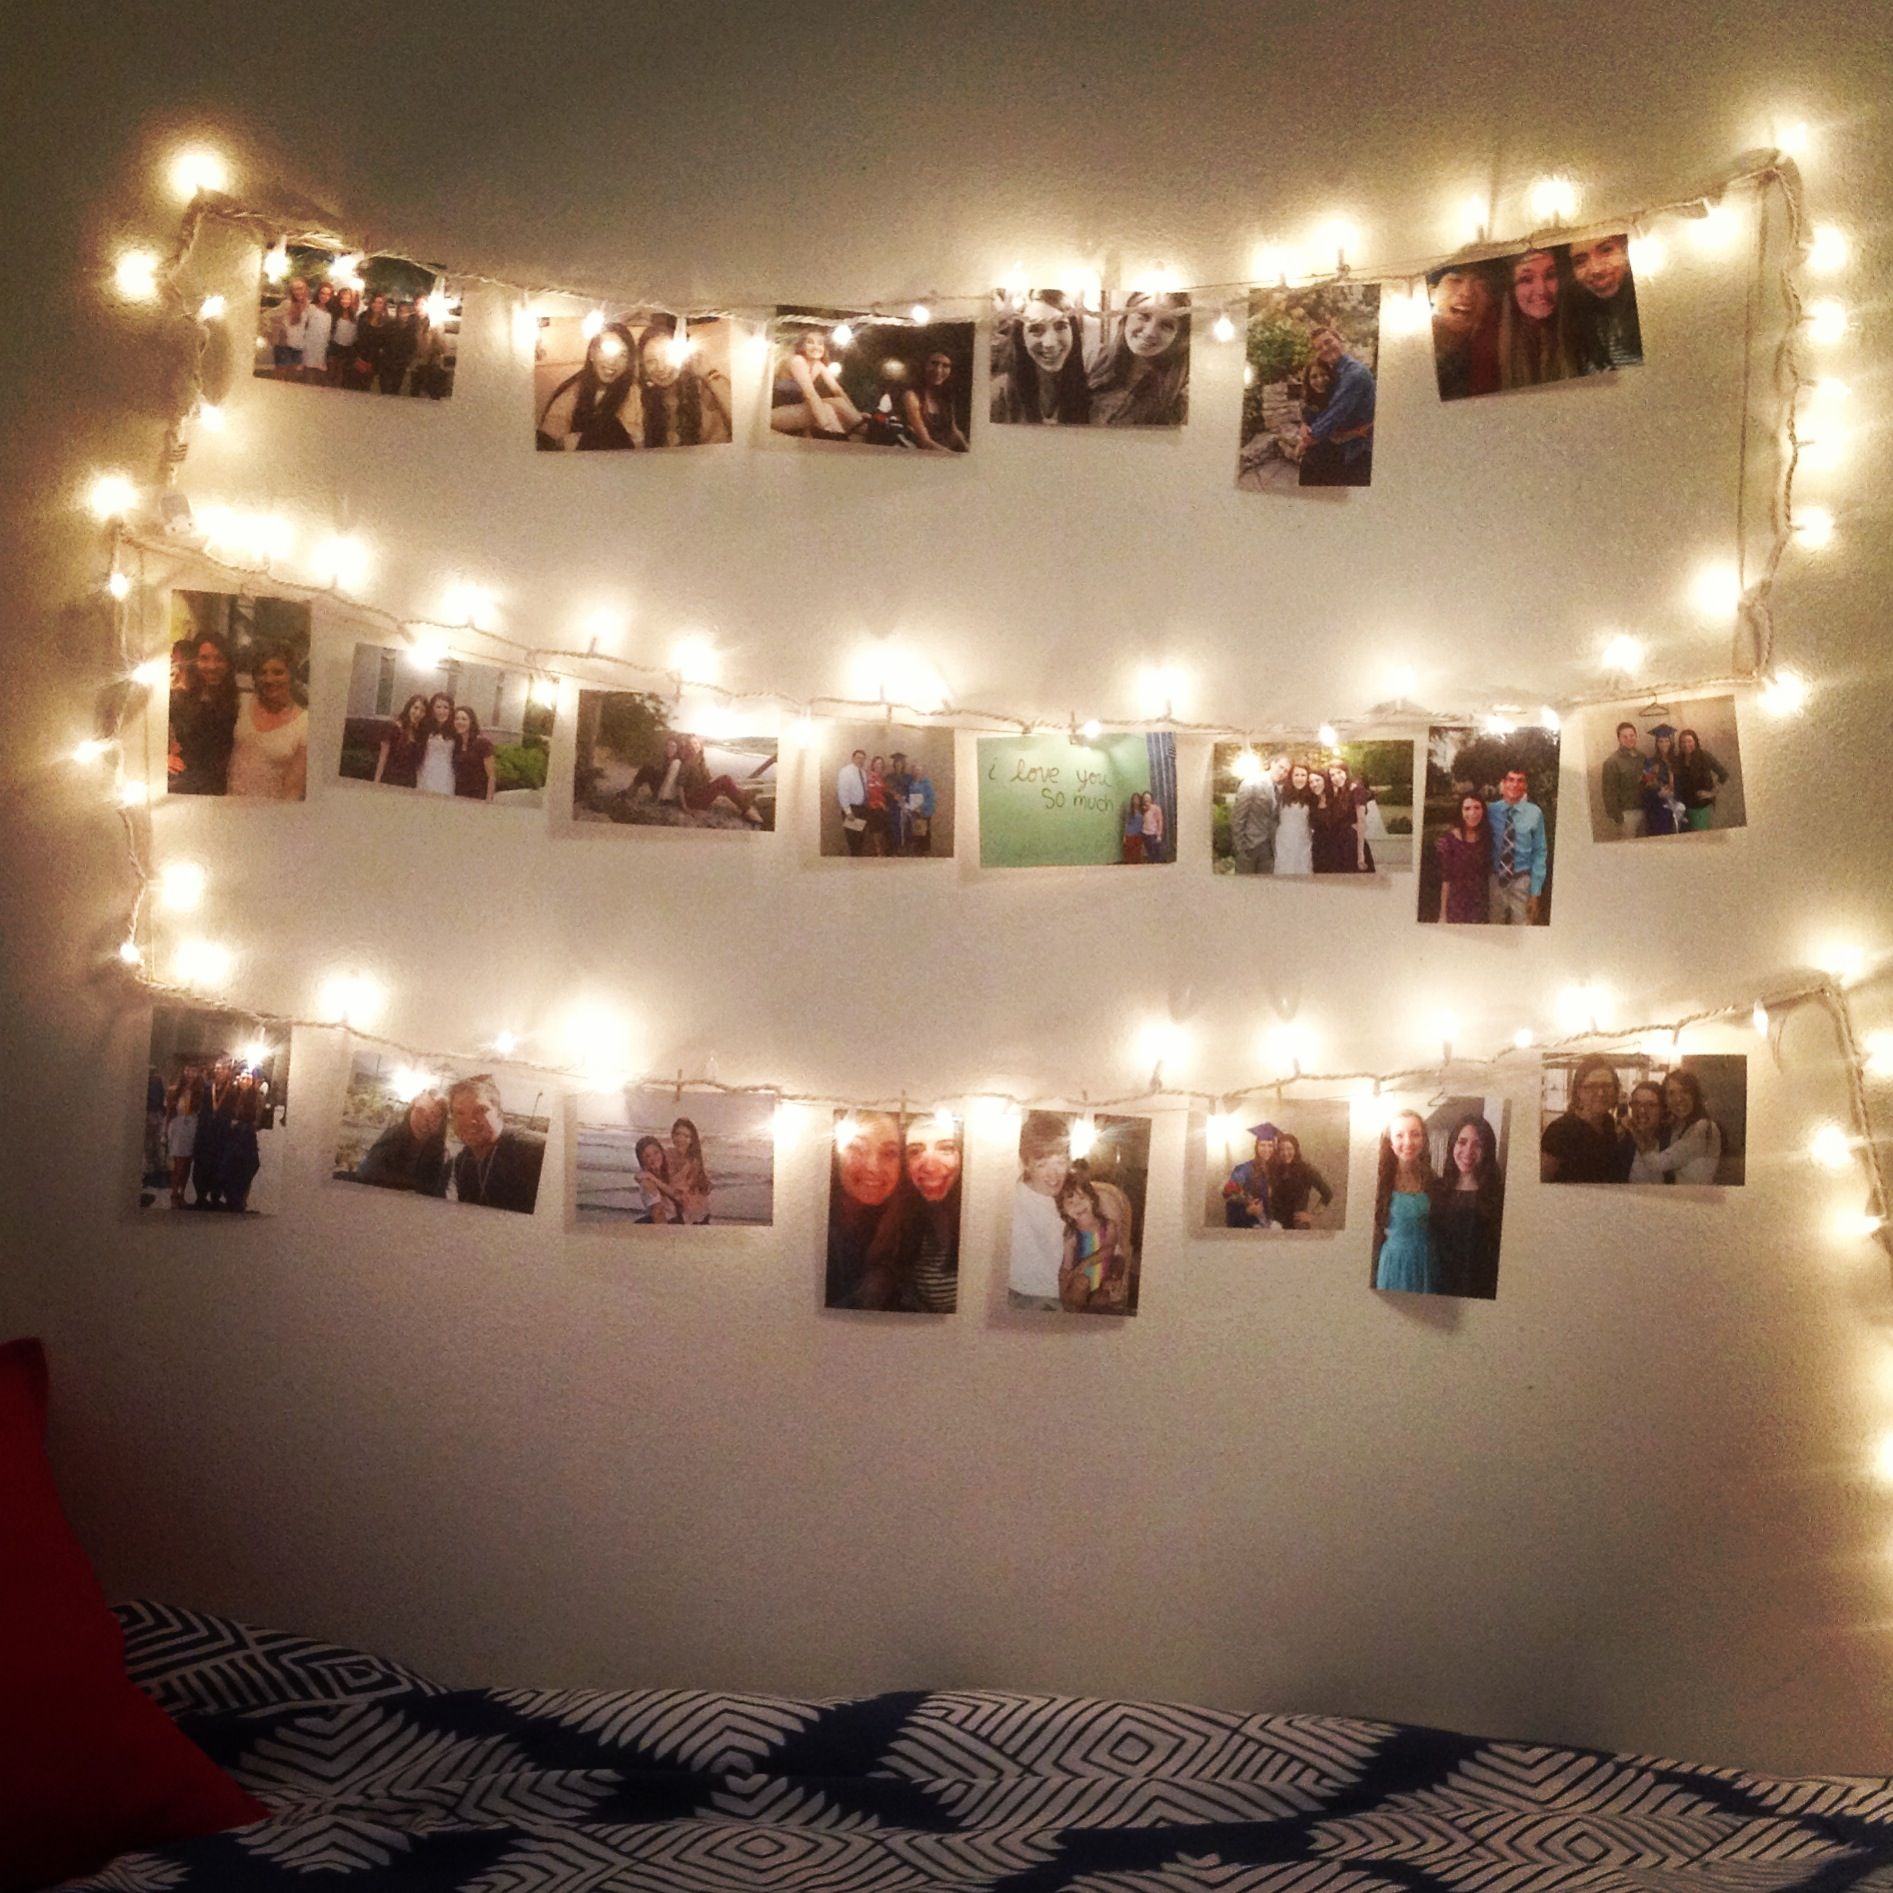 dorm room lighting ideas. my dorm room lights and pictures display lighting ideas o